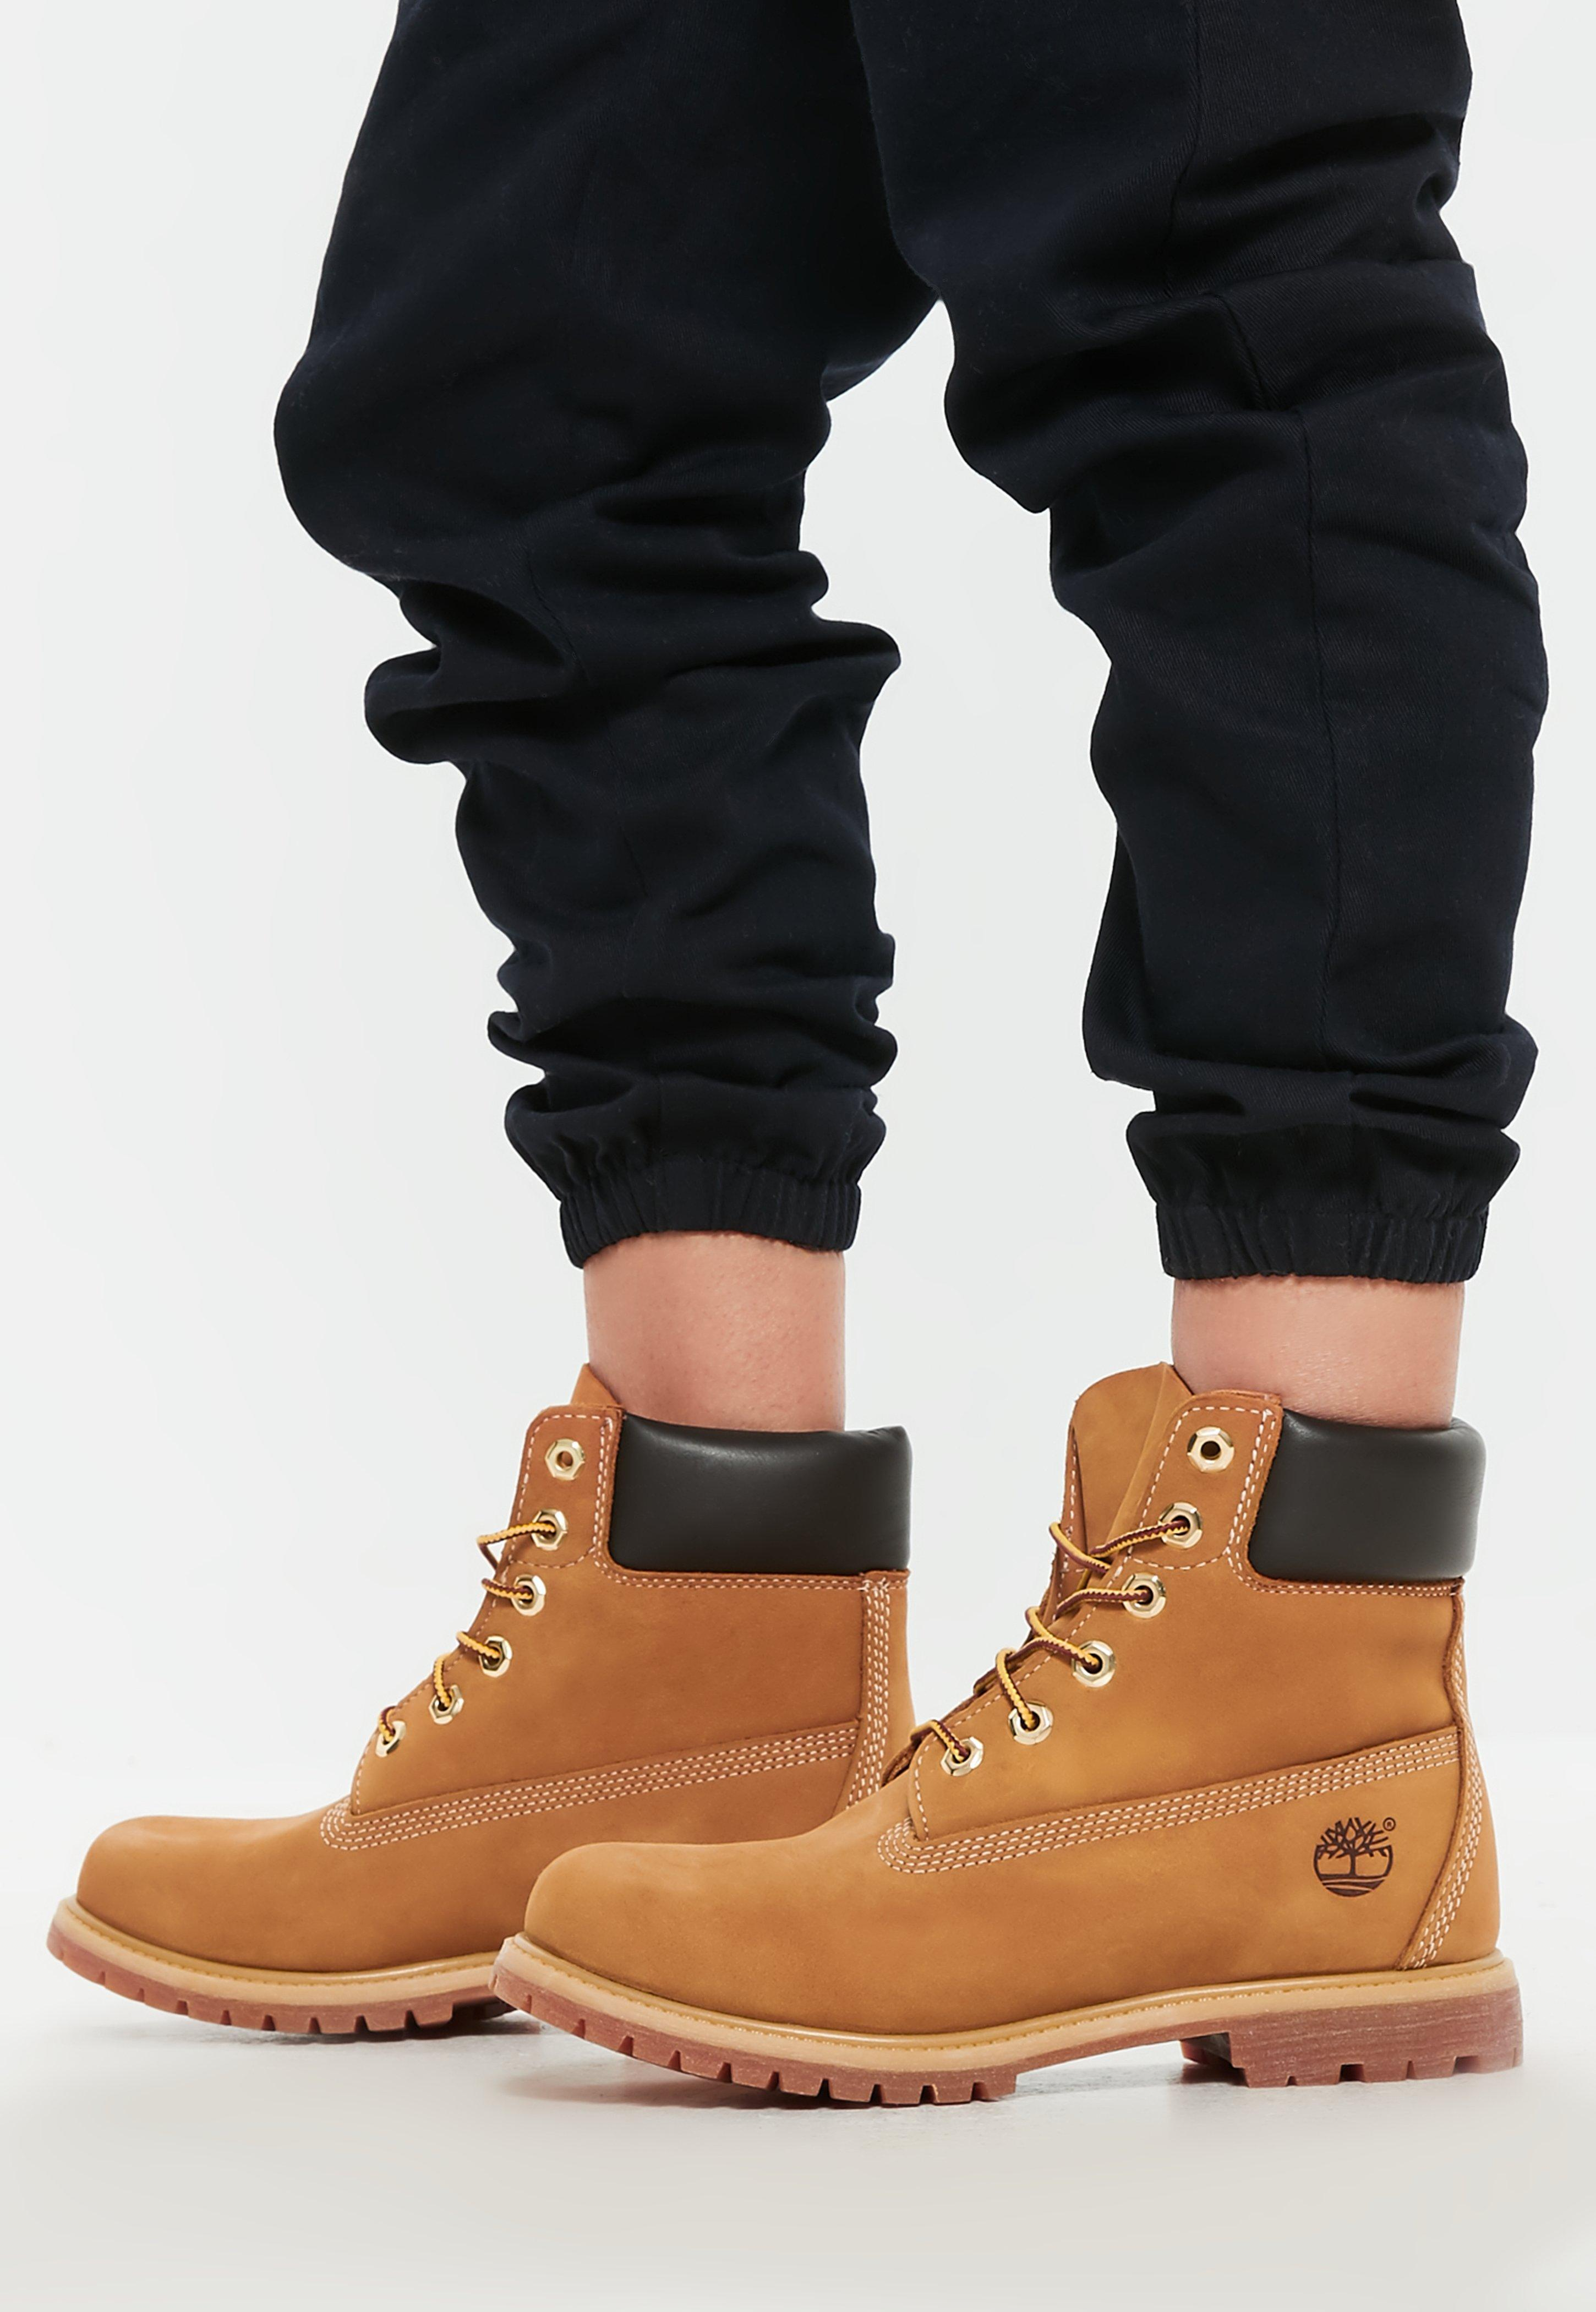 Fake Sale Online Discount Missguided Timberland 6 Inch Waterbuck Boots PySjqIIGa